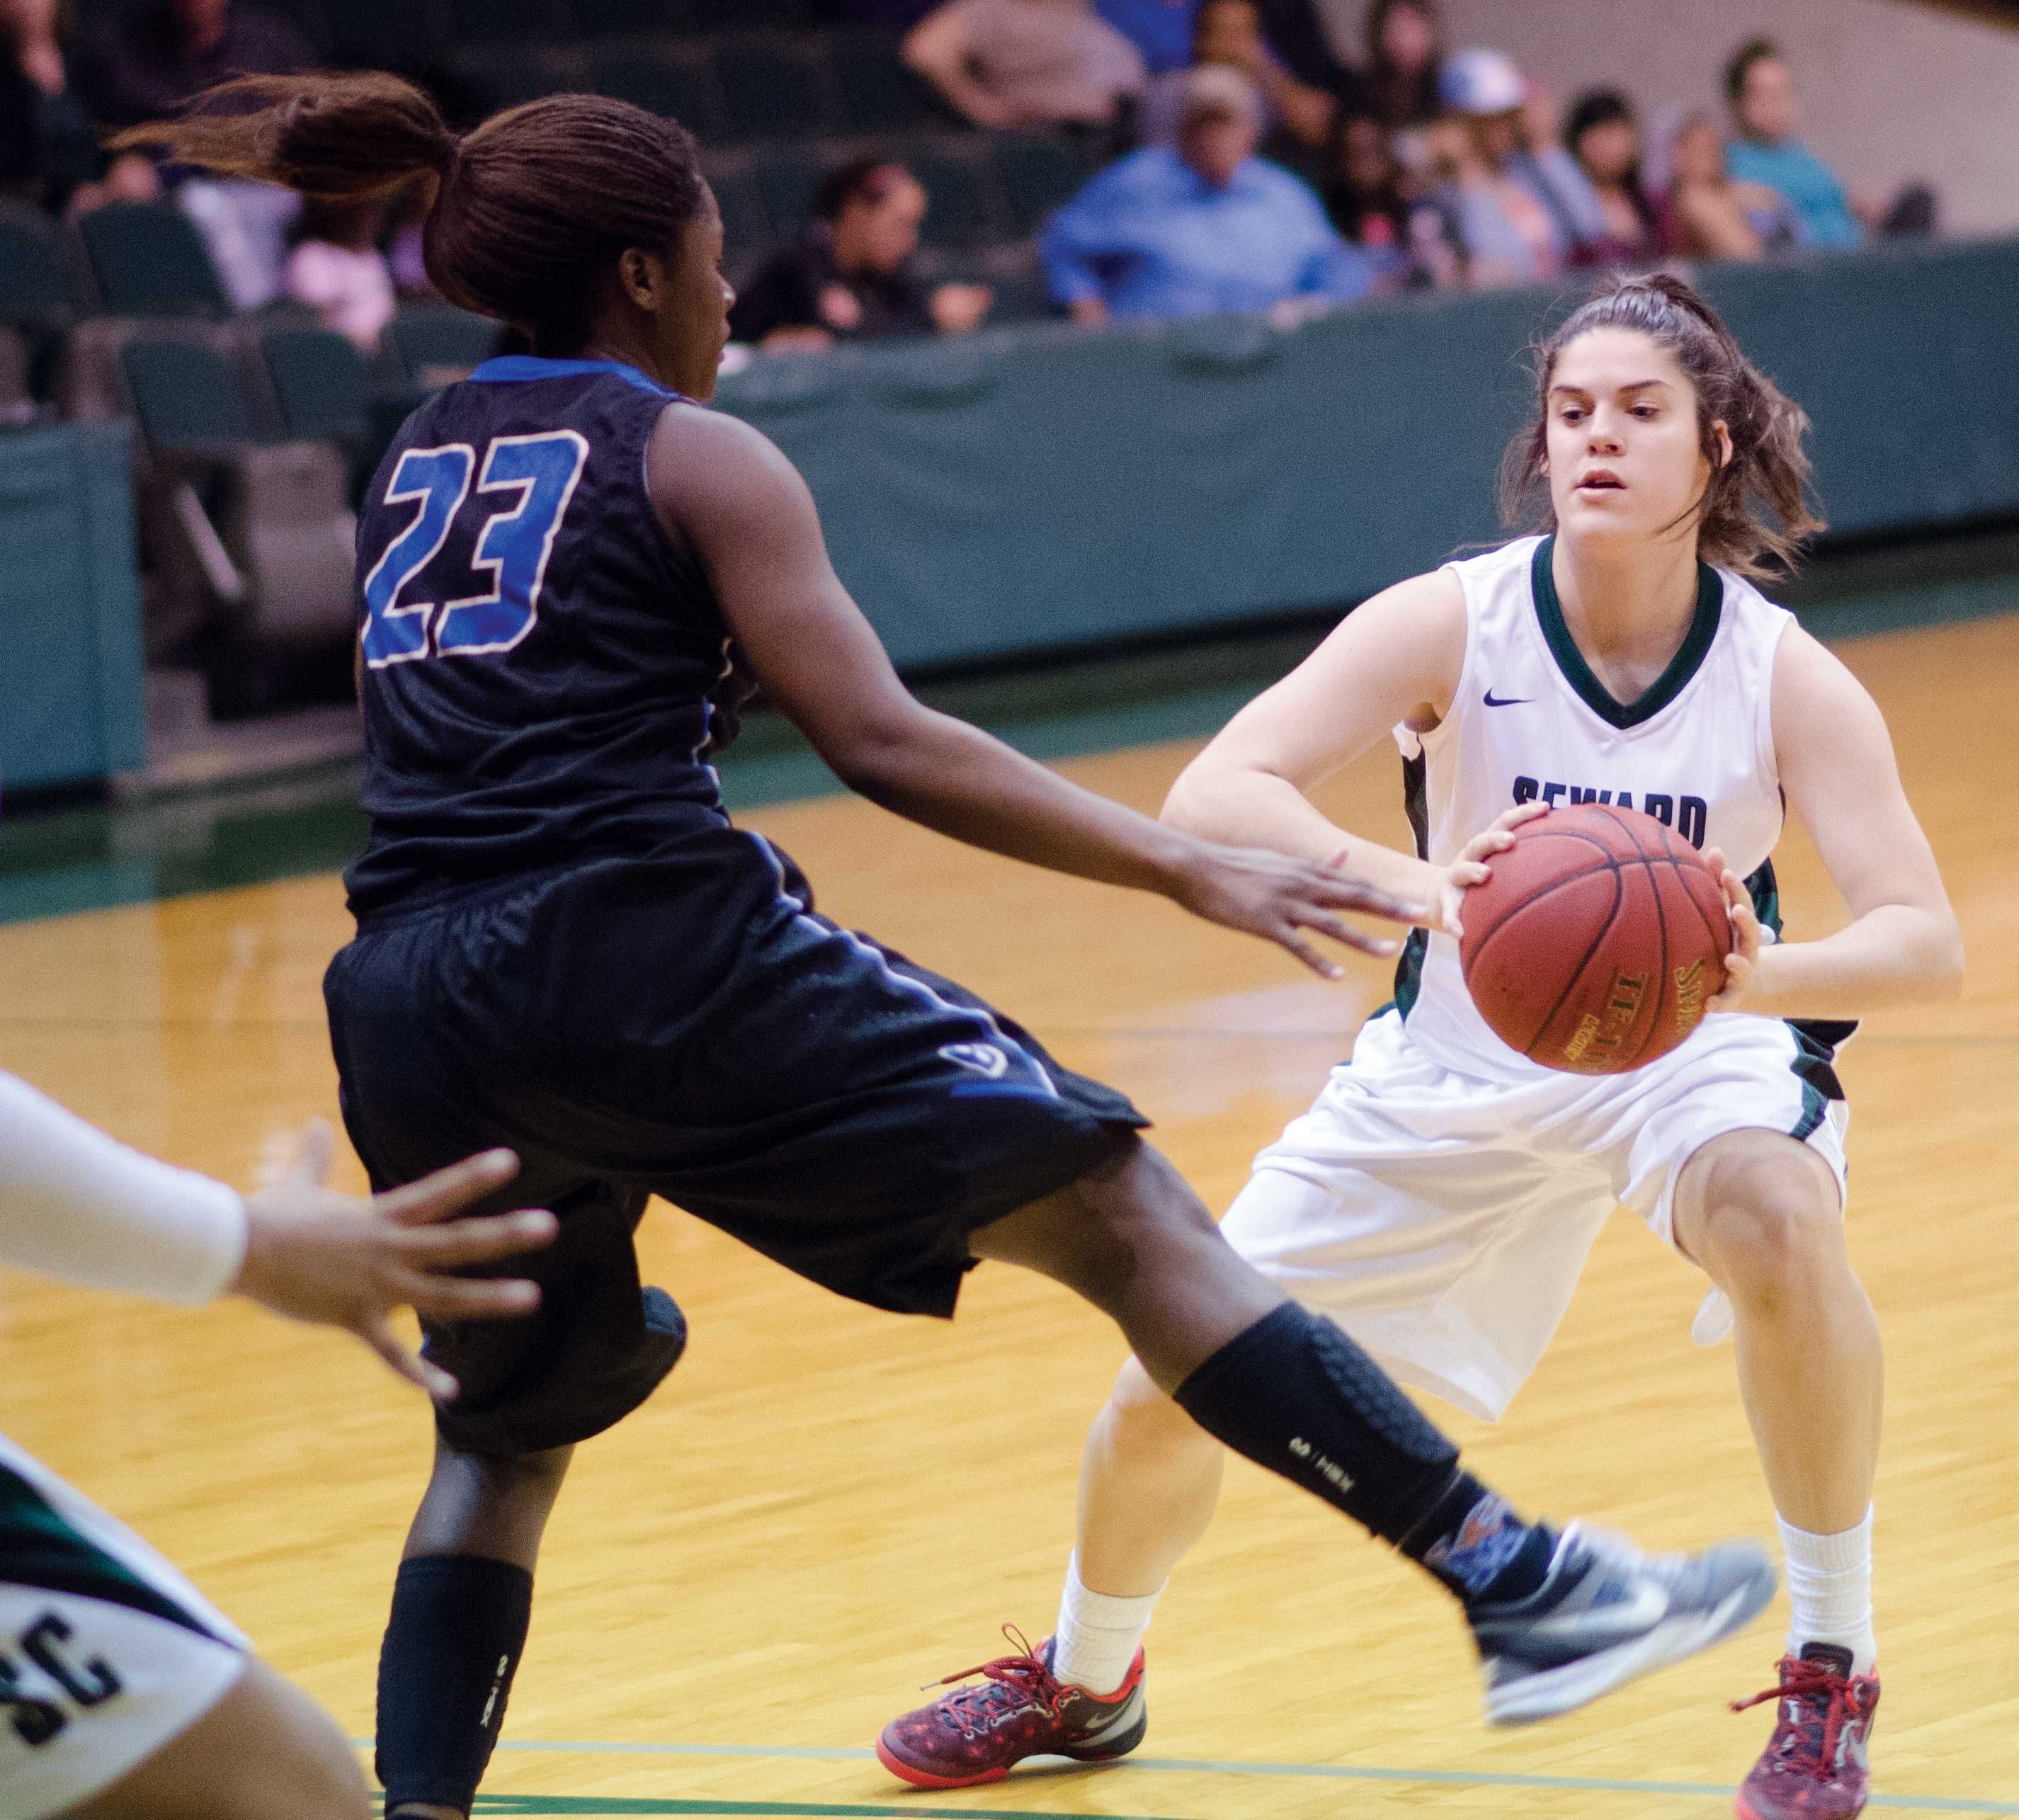 Lady Saints earn home court advantage for Saturday playoffs